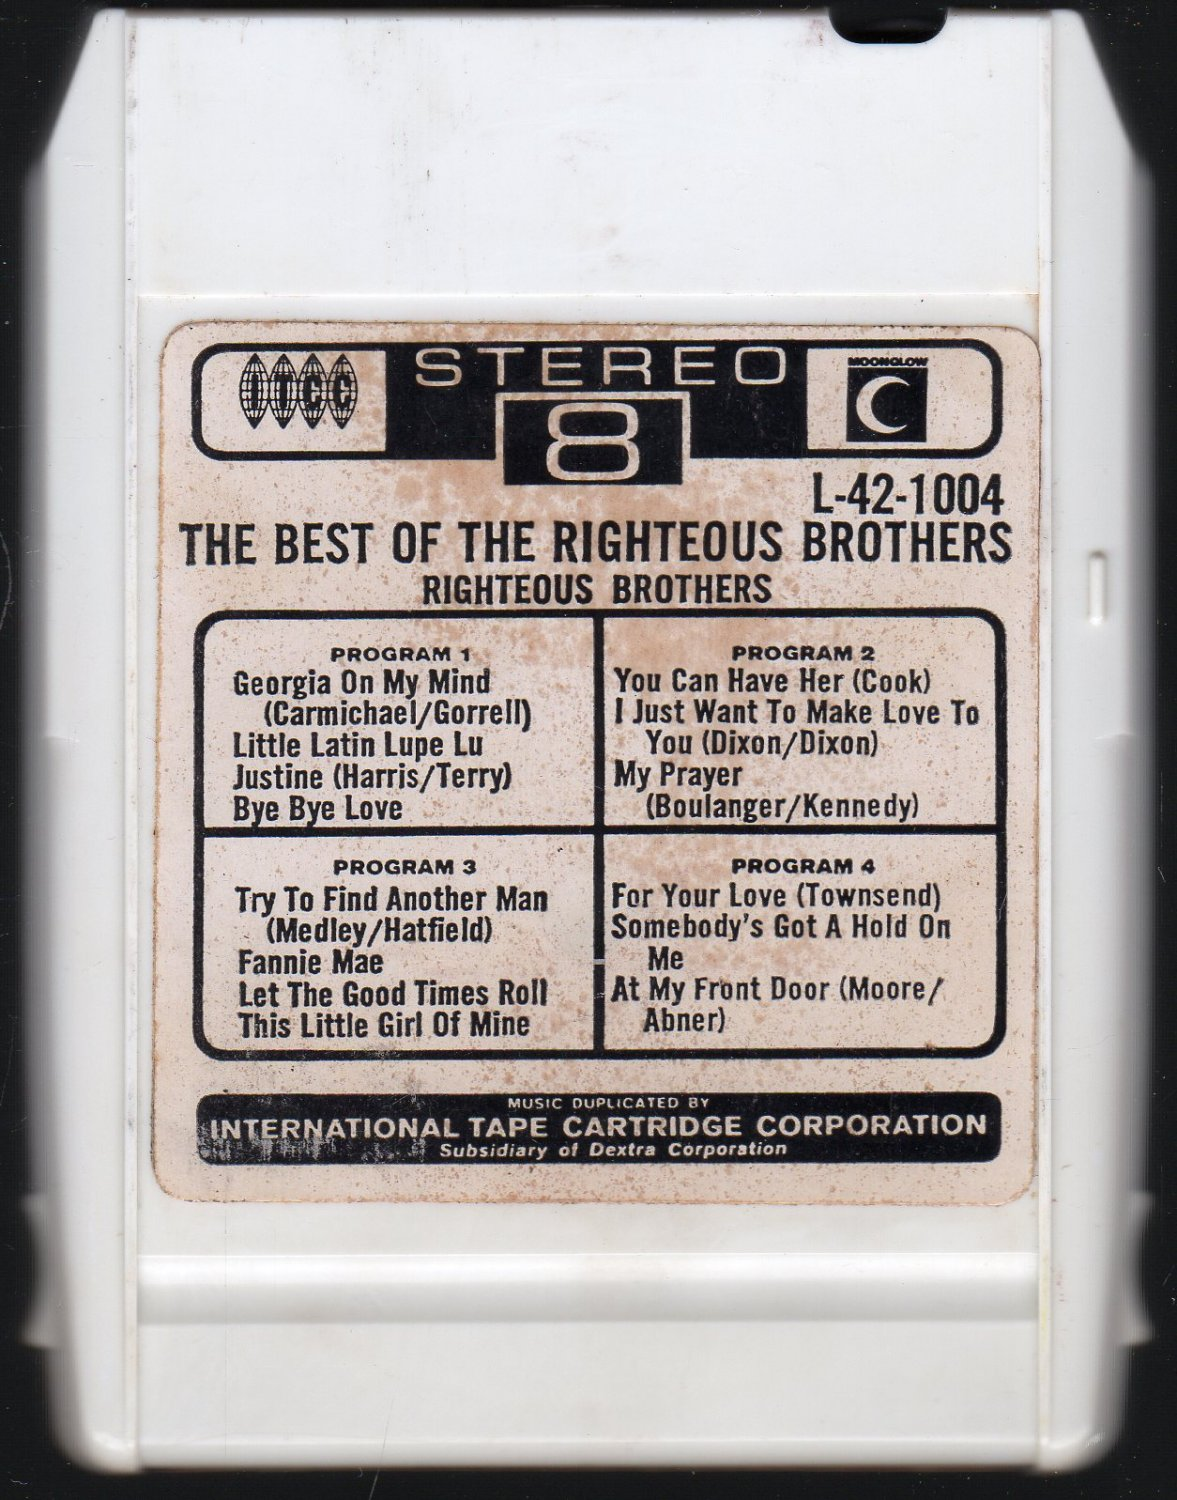 The Righteous Brothers - The Best Of The Righteous Brothers 1966 ITCC MOONGLOW A40 8-track tape